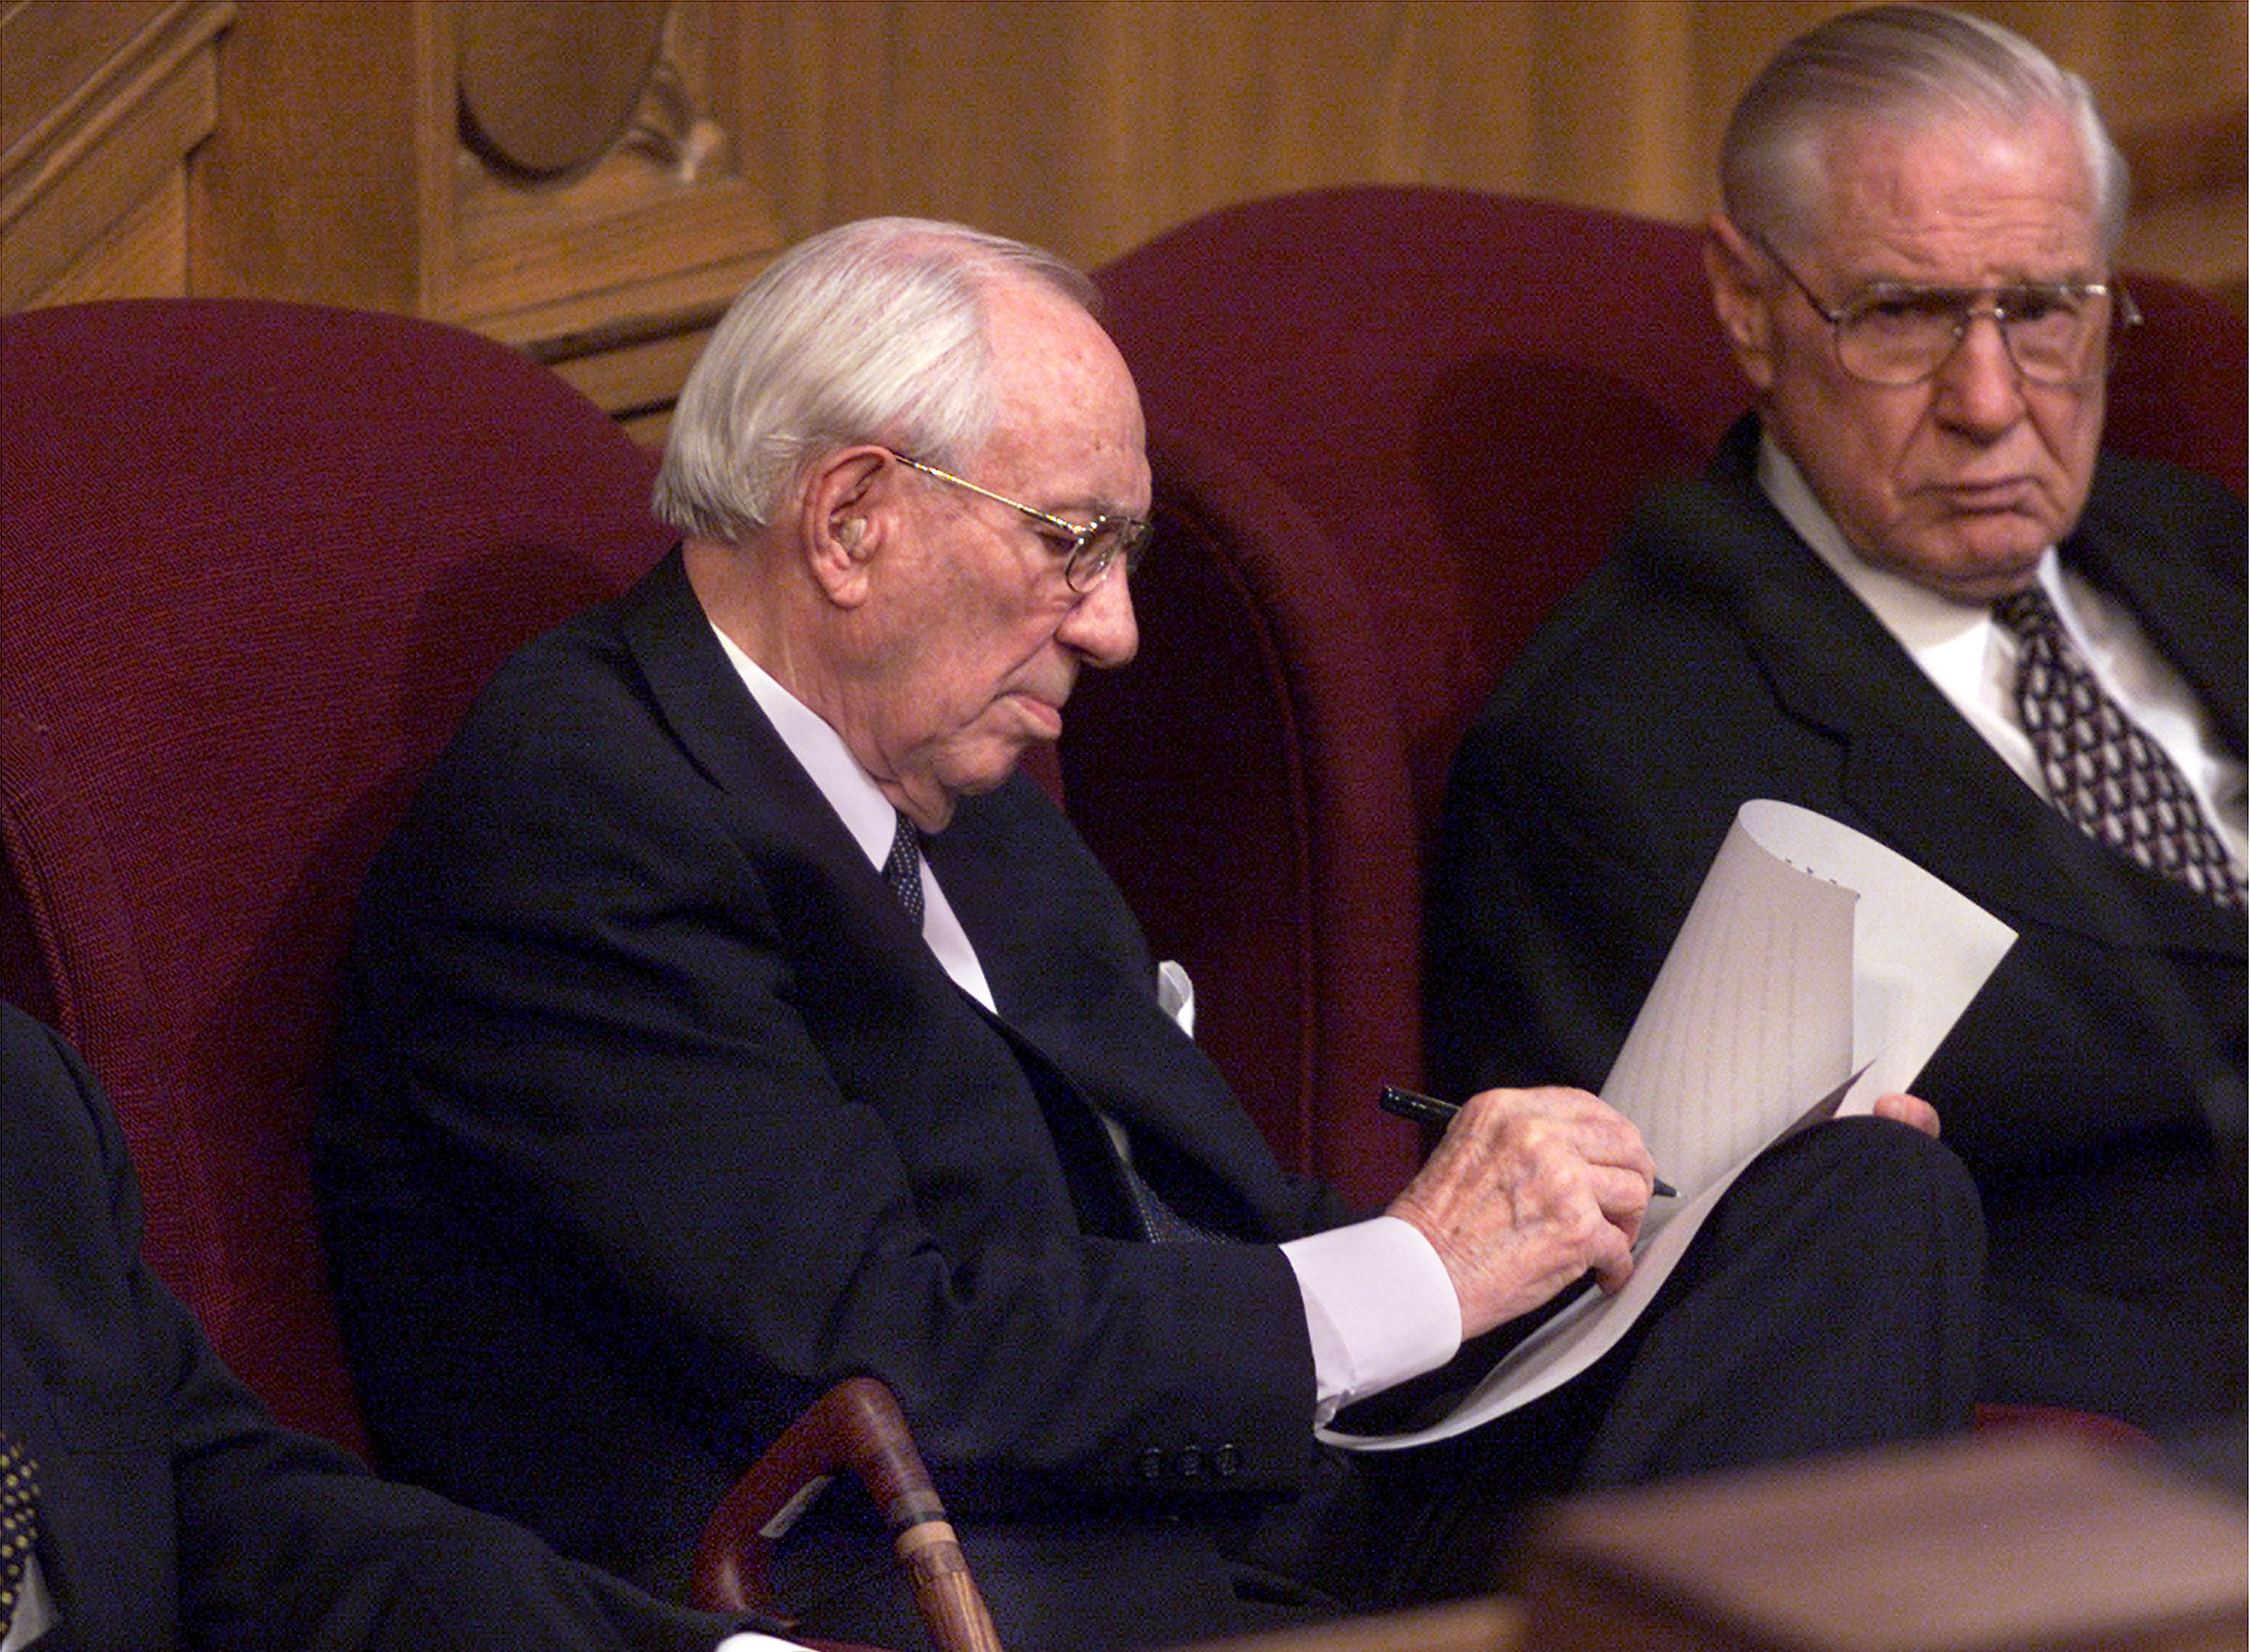 President Gordon B. Hinckley prepares an address at the memorial service in honor of those who died in the terrorist attack on the United States Sept. 11, 2001.